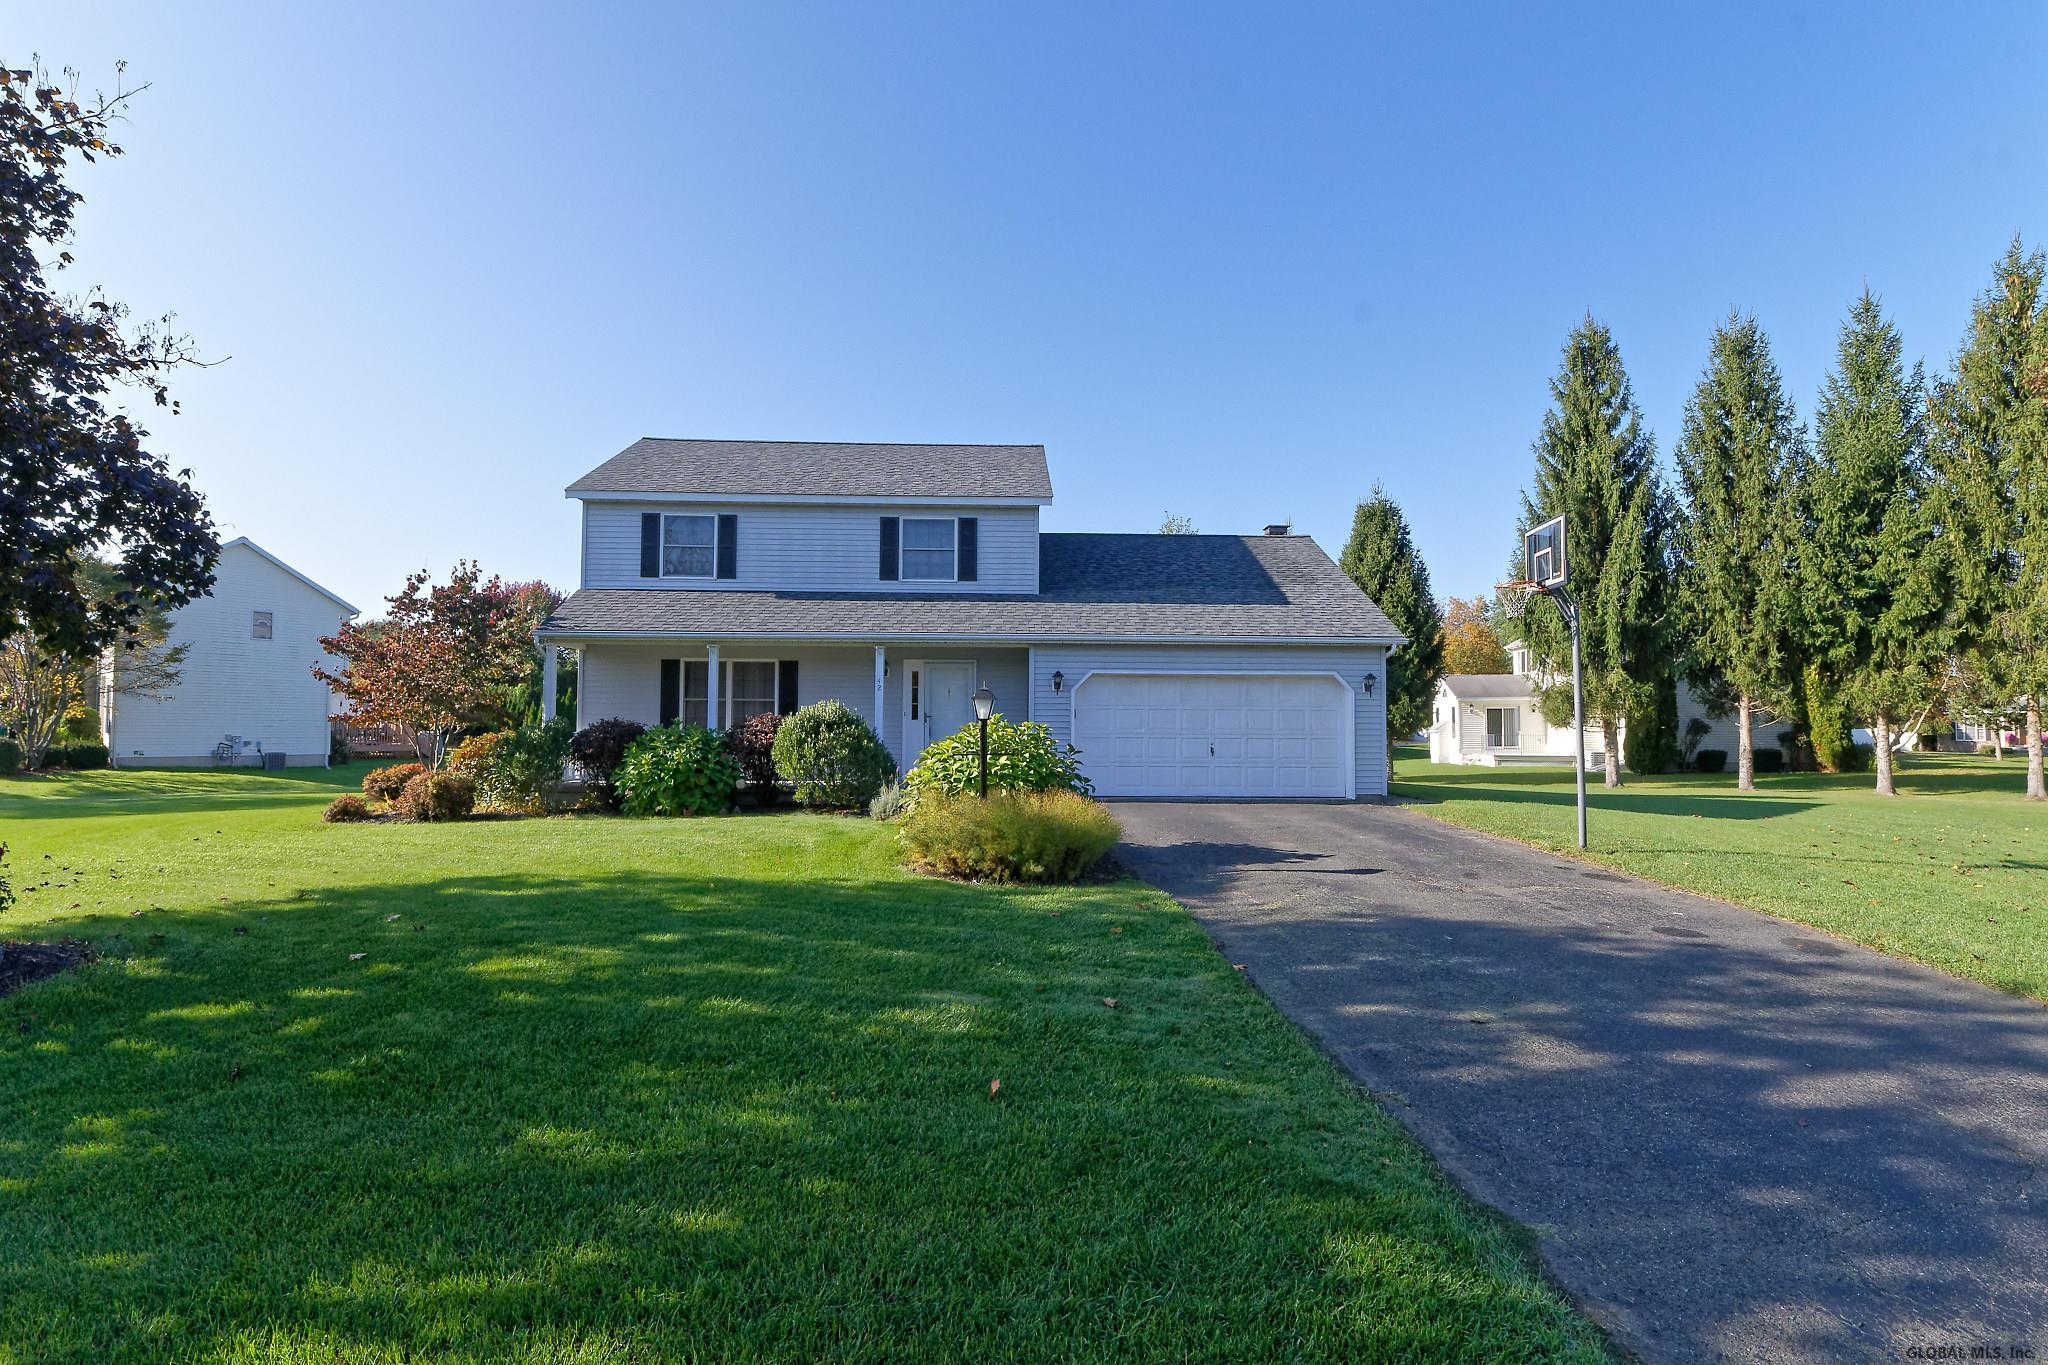 42 Copperfield Dr, Waterford, NY 12188 now has a new price of $282,900!